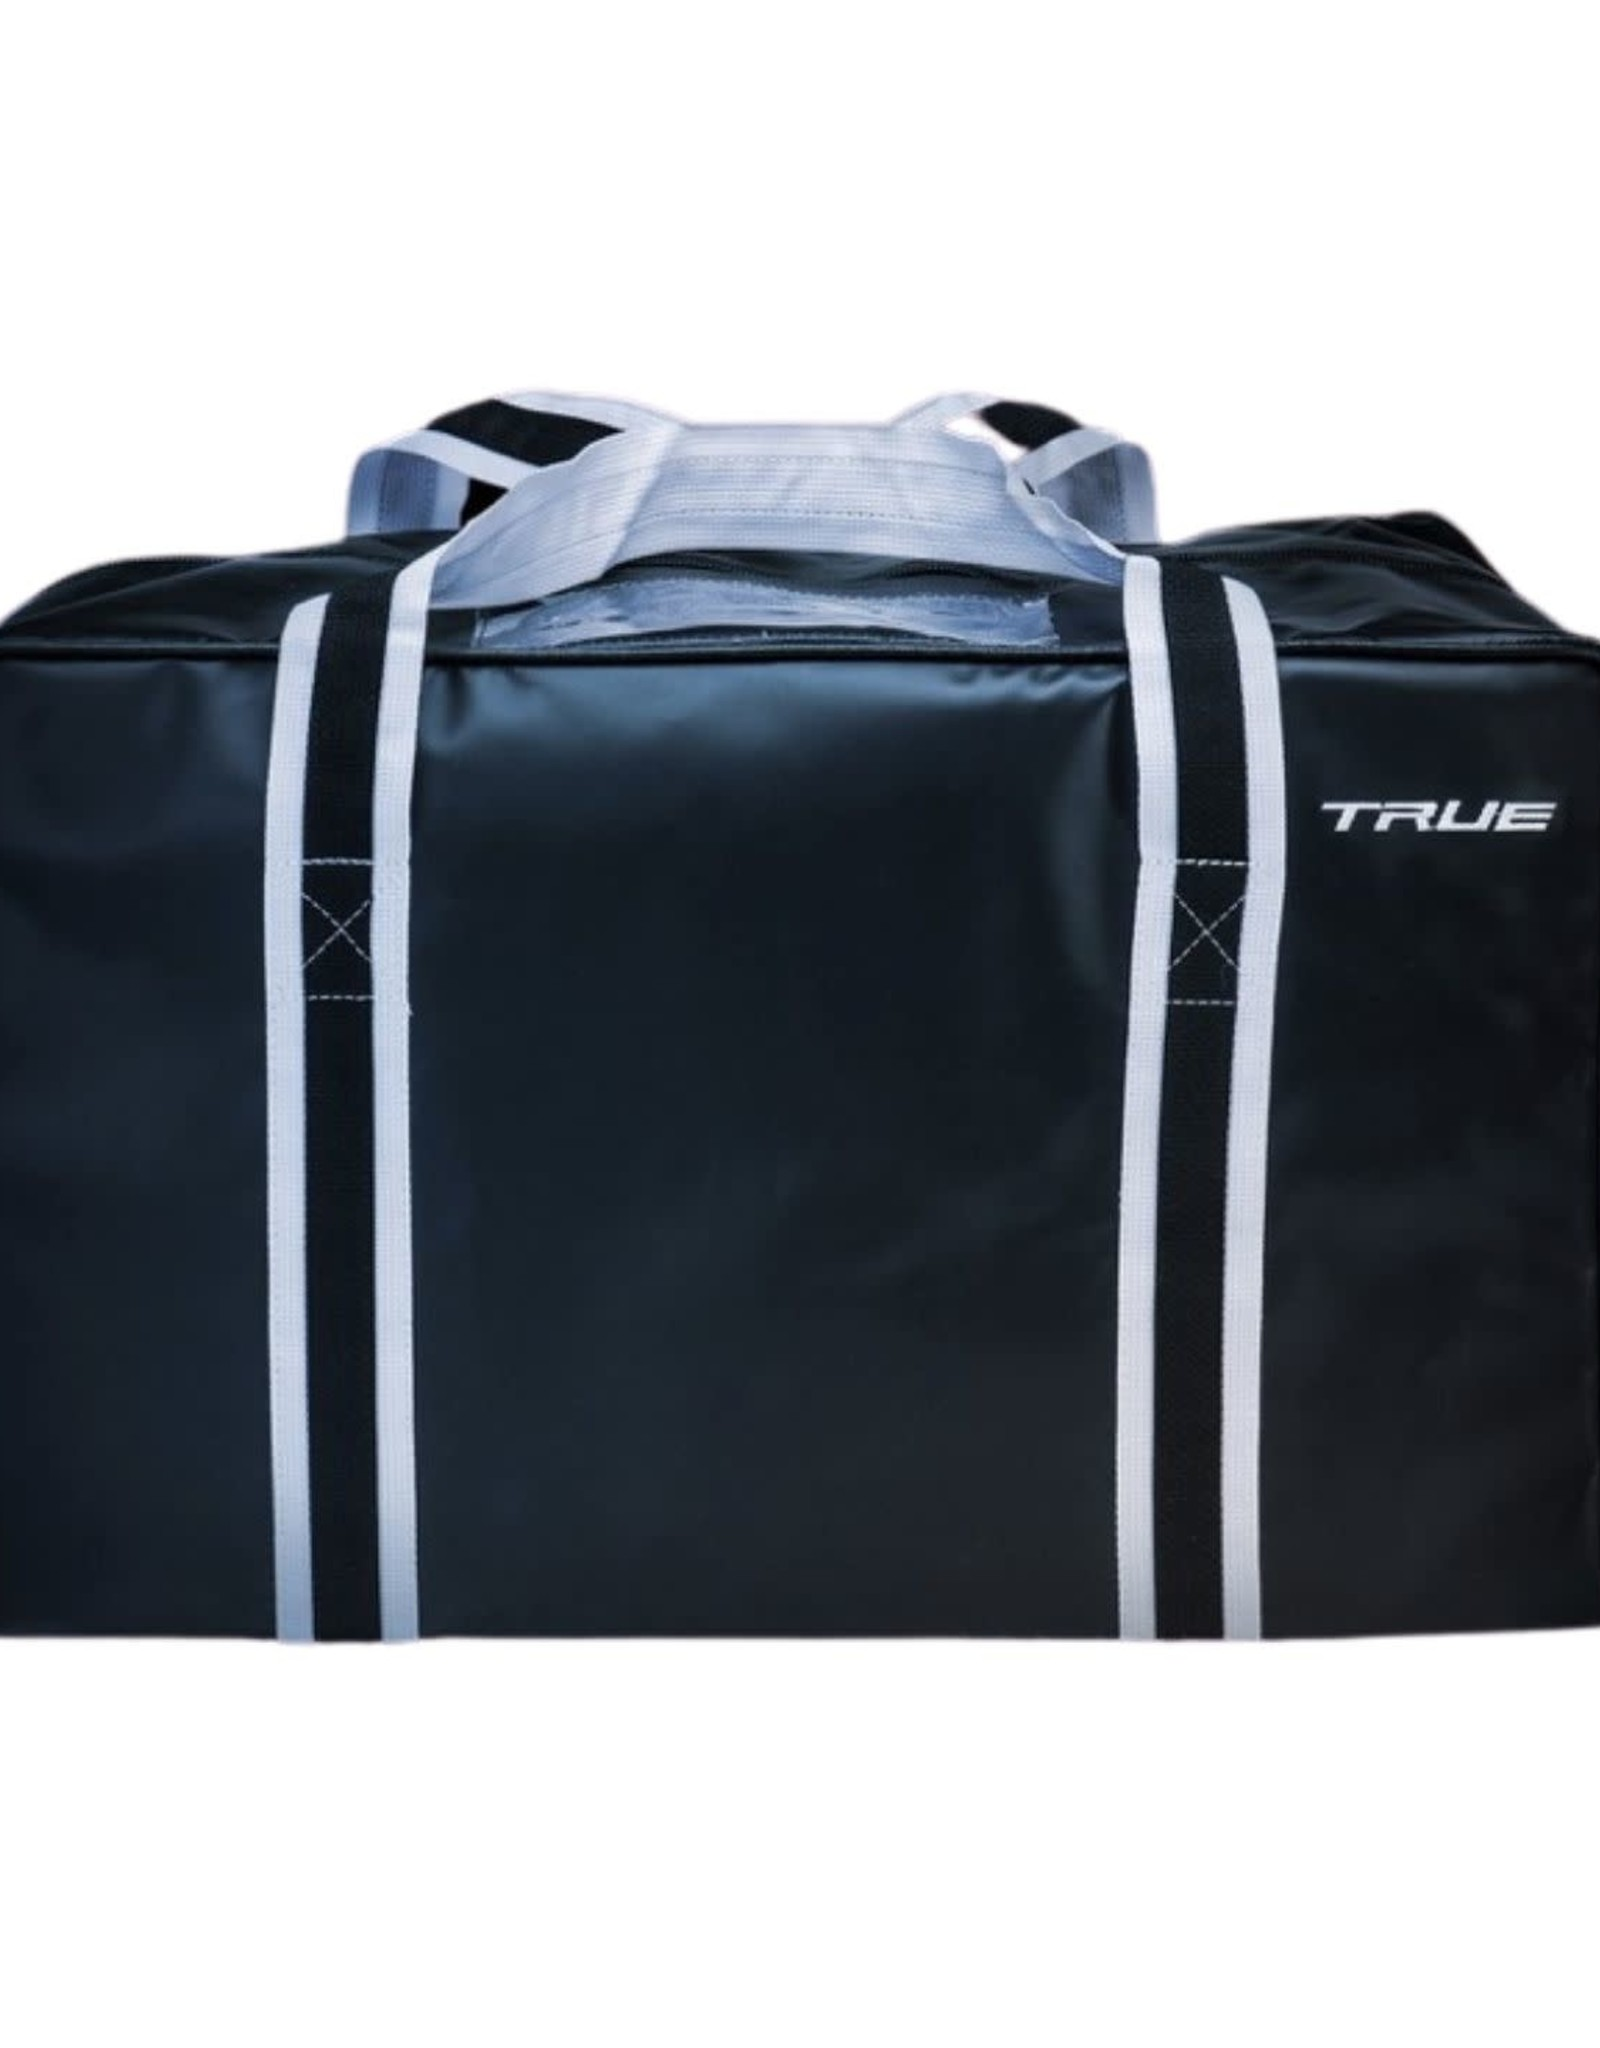 TRUE TRUE Pro Bag (GOALIE)